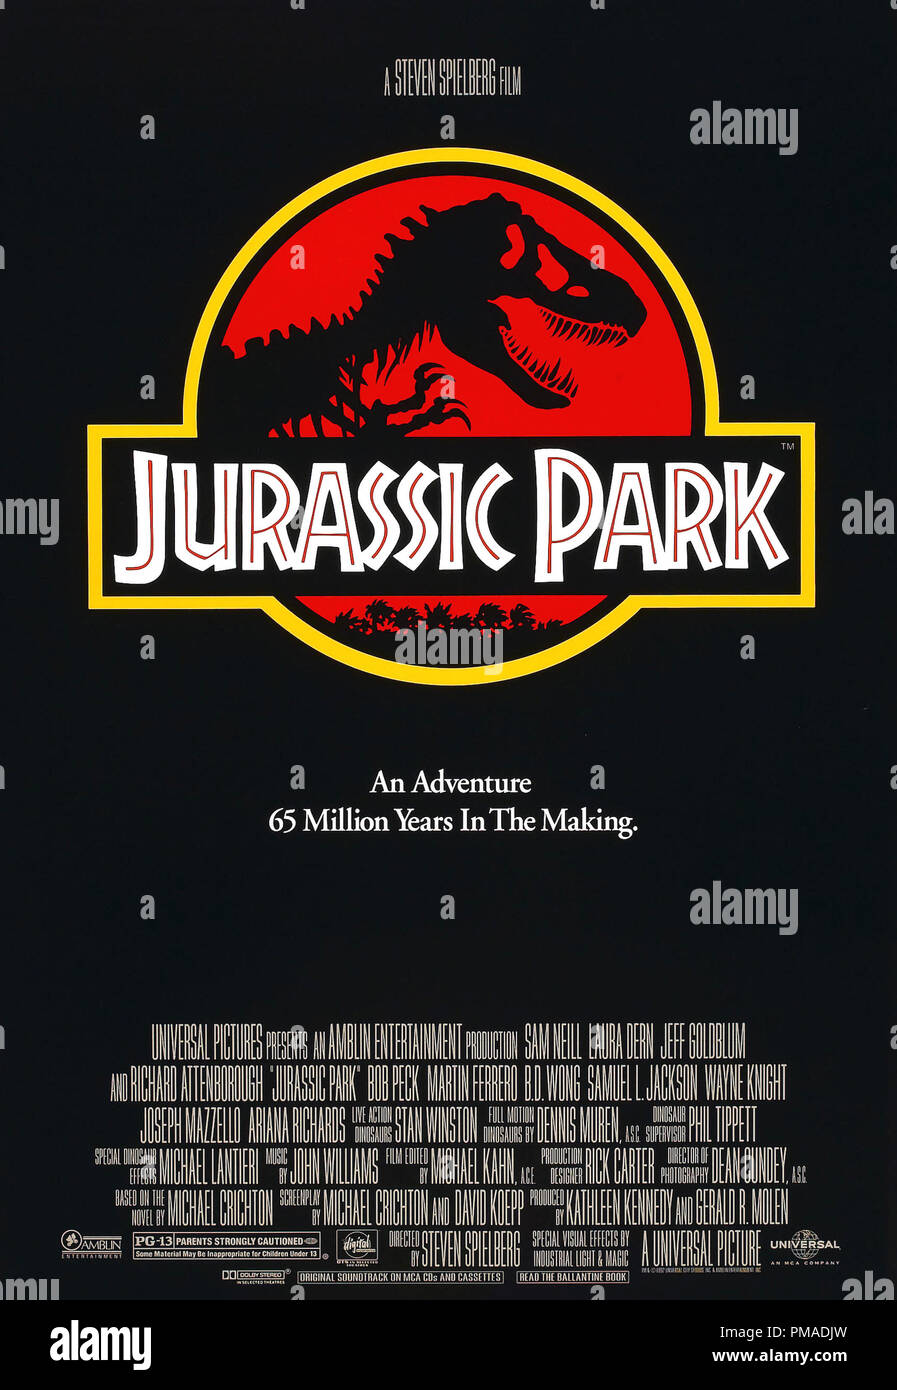 'Jurassic Park' - US Poster 1993 Universal Pictures   File Reference # 32509_214THA - Stock Image